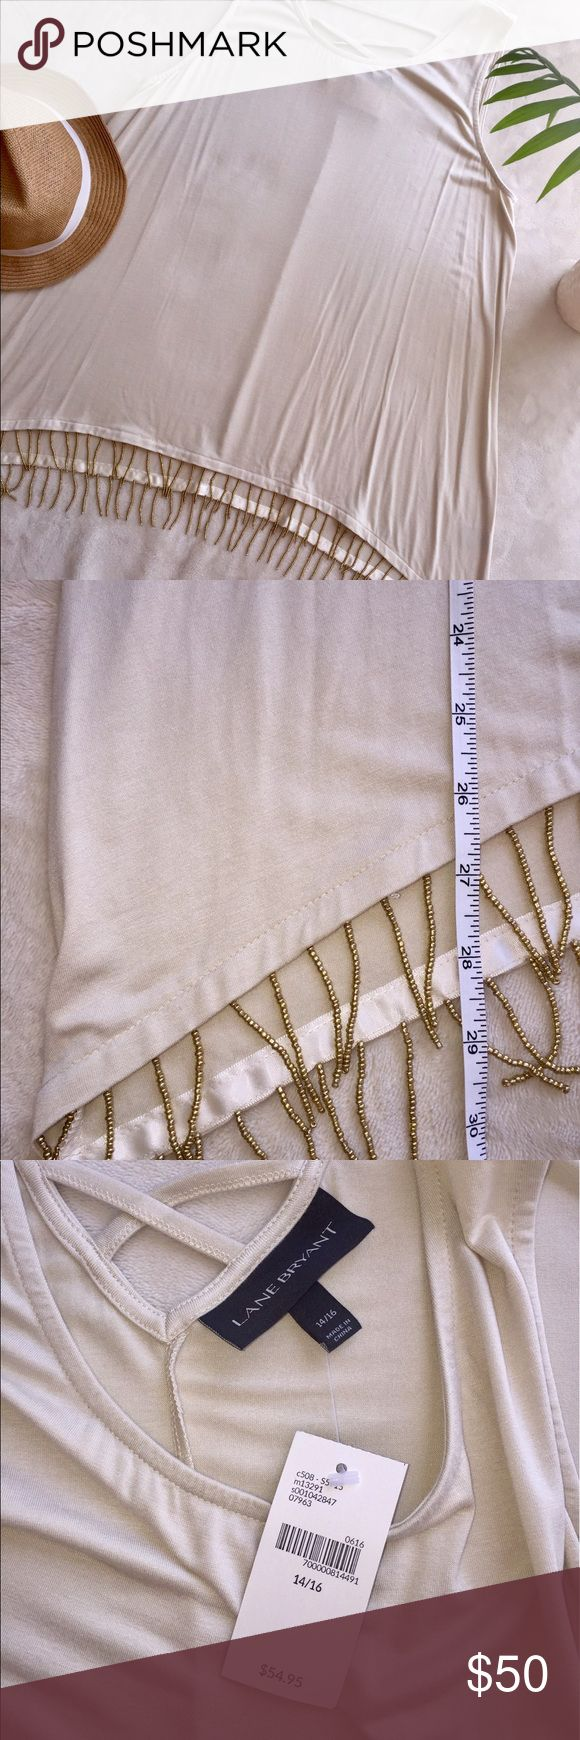 Lane Bryant Top Boho Gold Fringe Trim Taupe Shirt Lane Bryant Cream Top with Gold Fringe trim. Shark bite style with crisscross pattern in back. Completely beautiful Top!! Size 14/16. Lane Bryant Tops Blouses